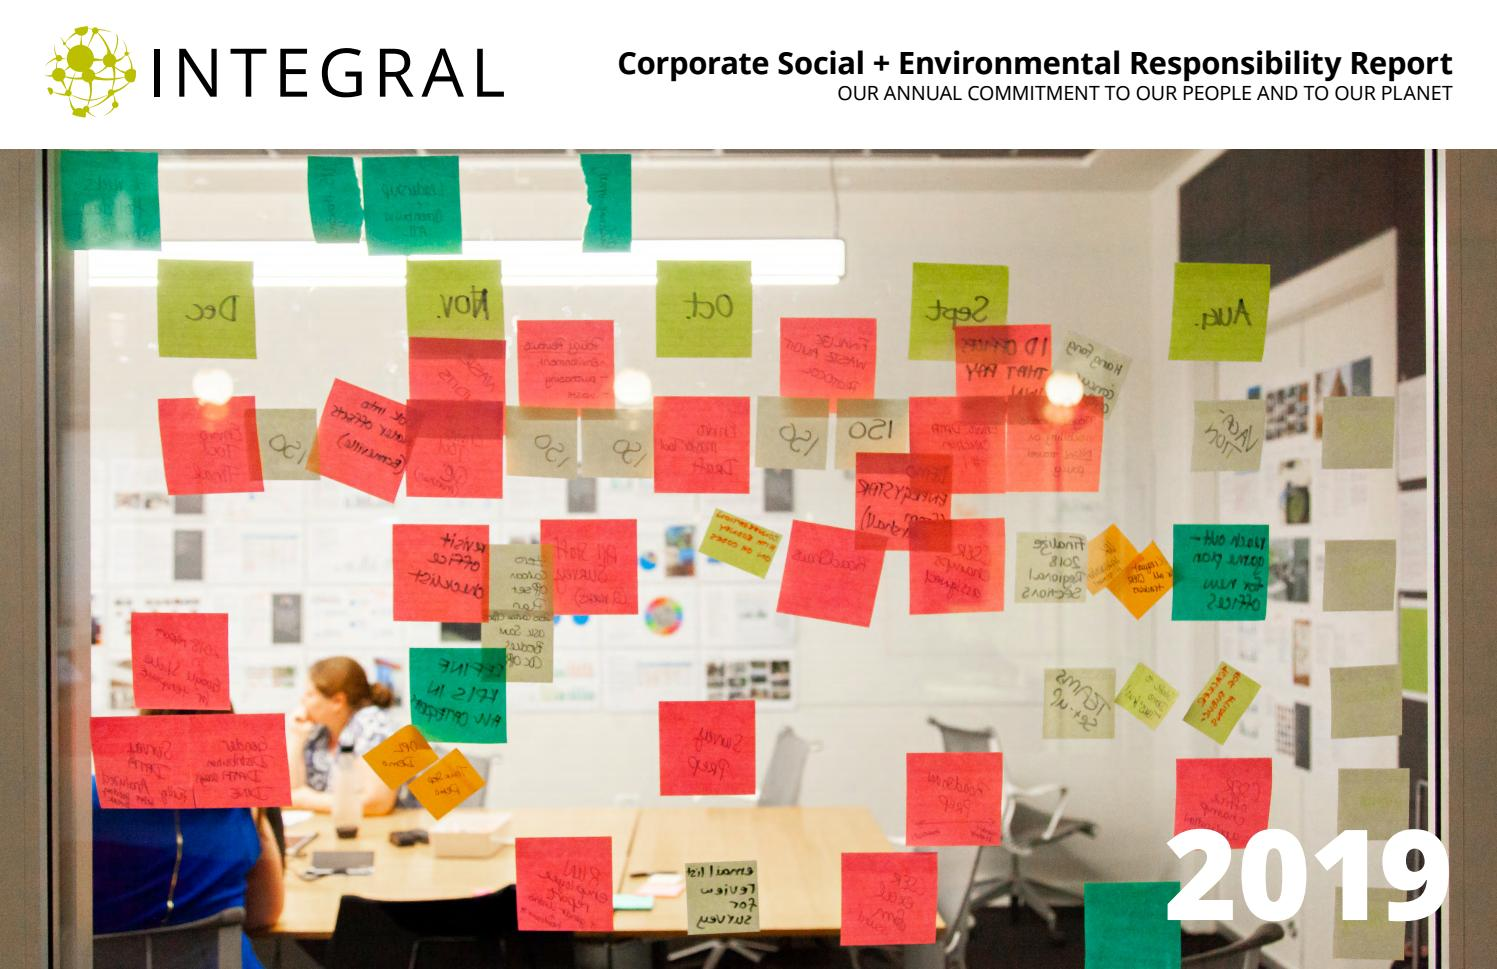 Integral Group 2019 Corporate Social Environmental Responsibility Report By Integral Group Issuu